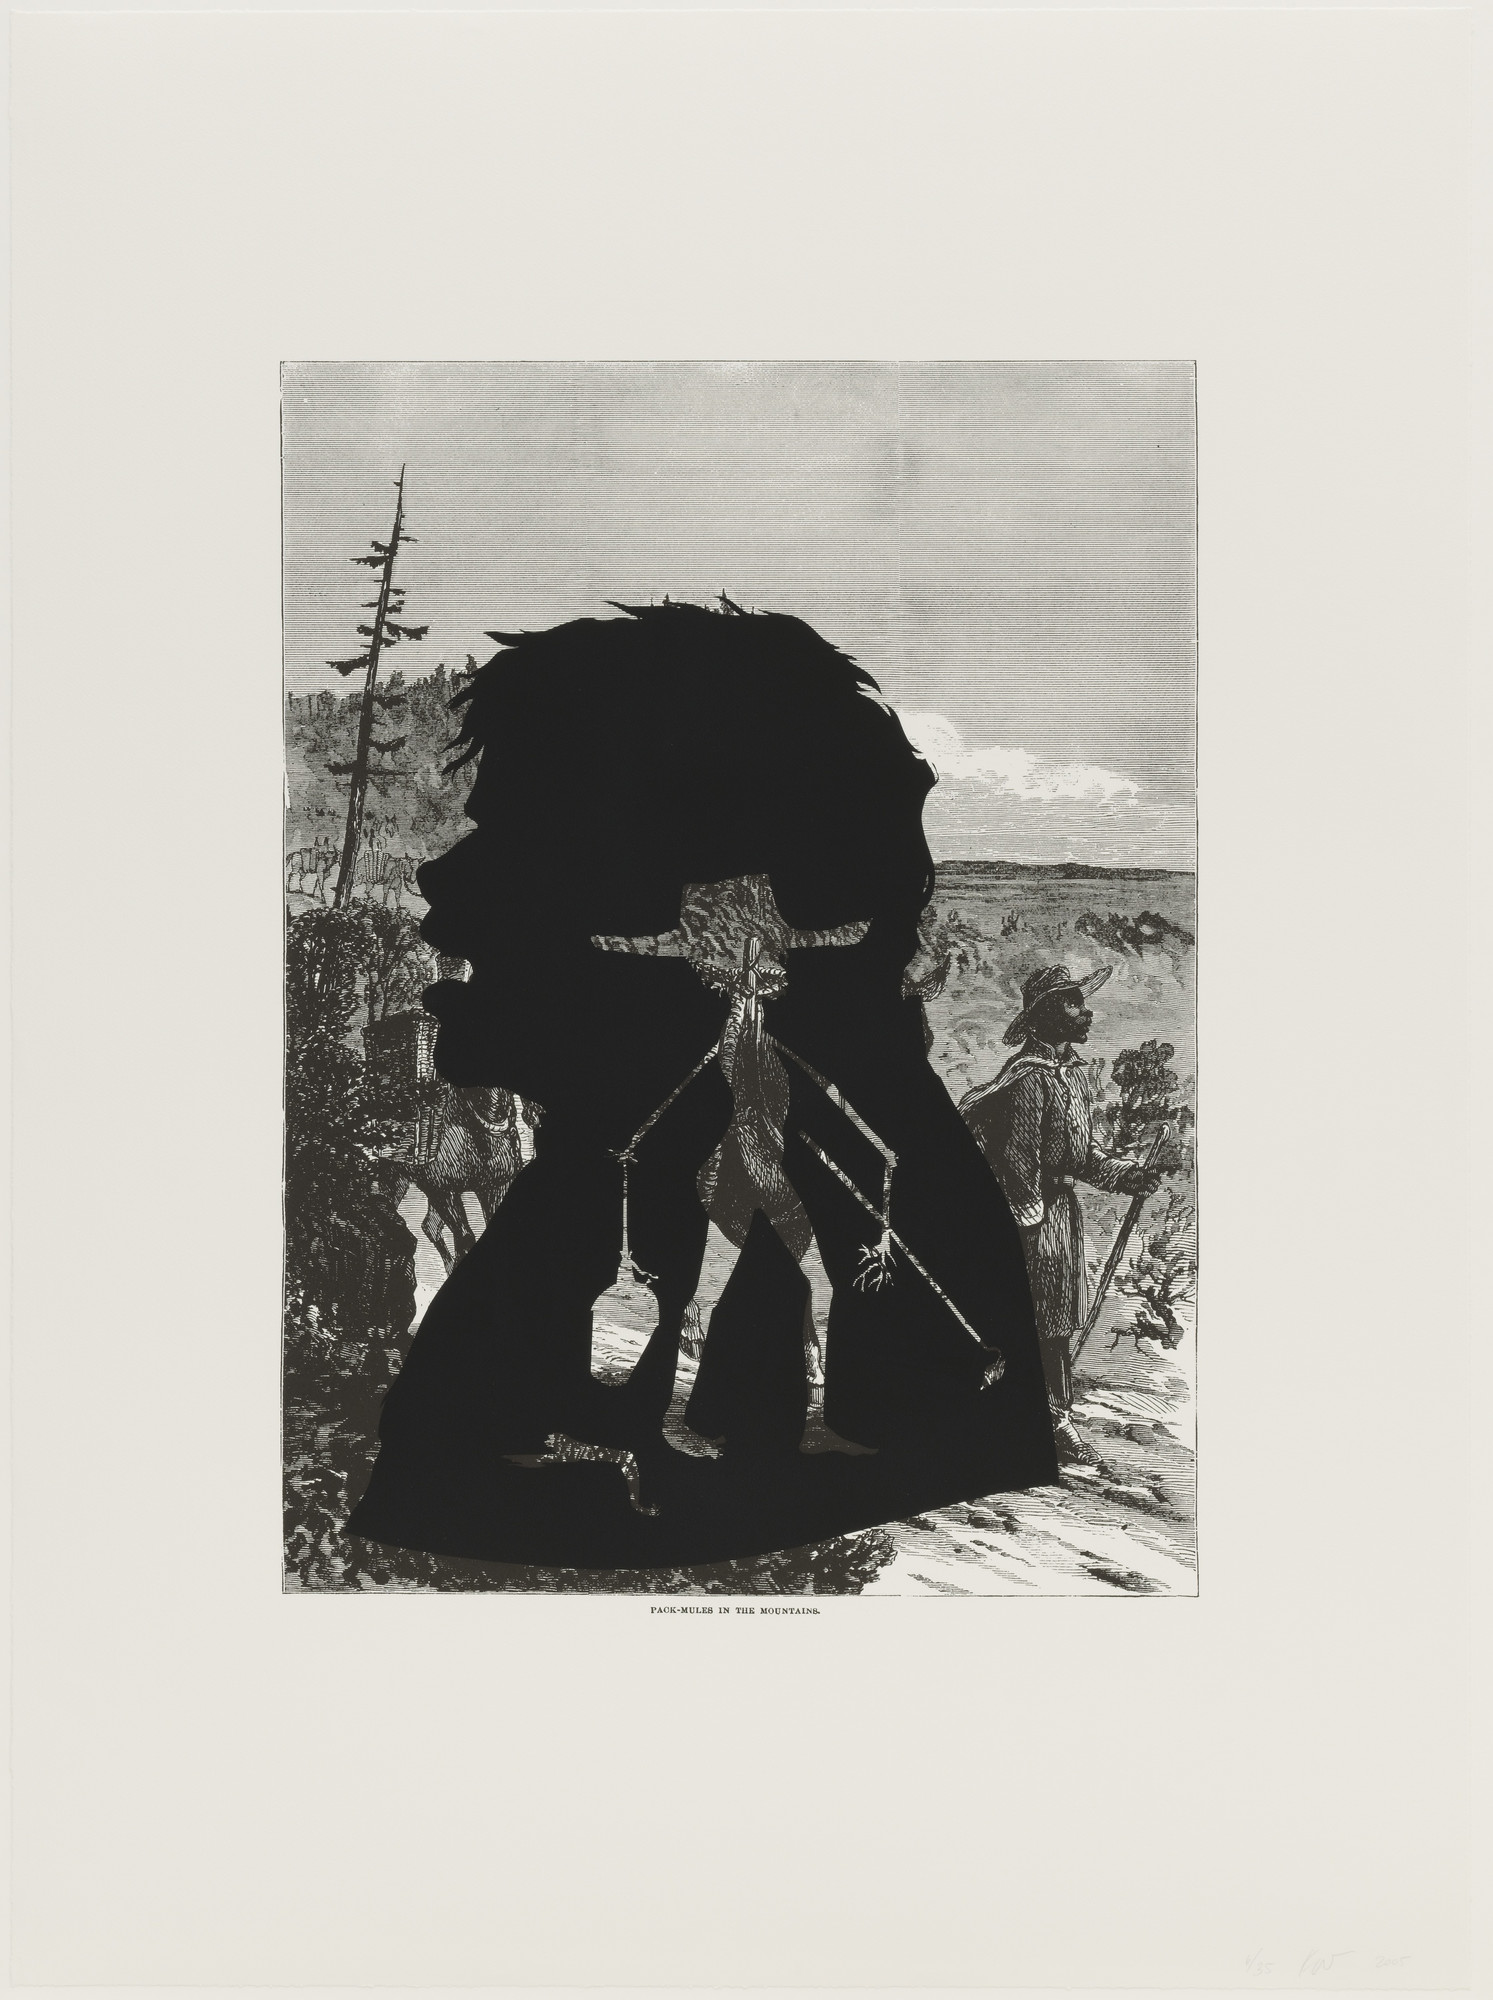 Kara Walker. Pack-Mules in the Mountains from Harper's Pictorial History of the Civil War (Annotated). 2005